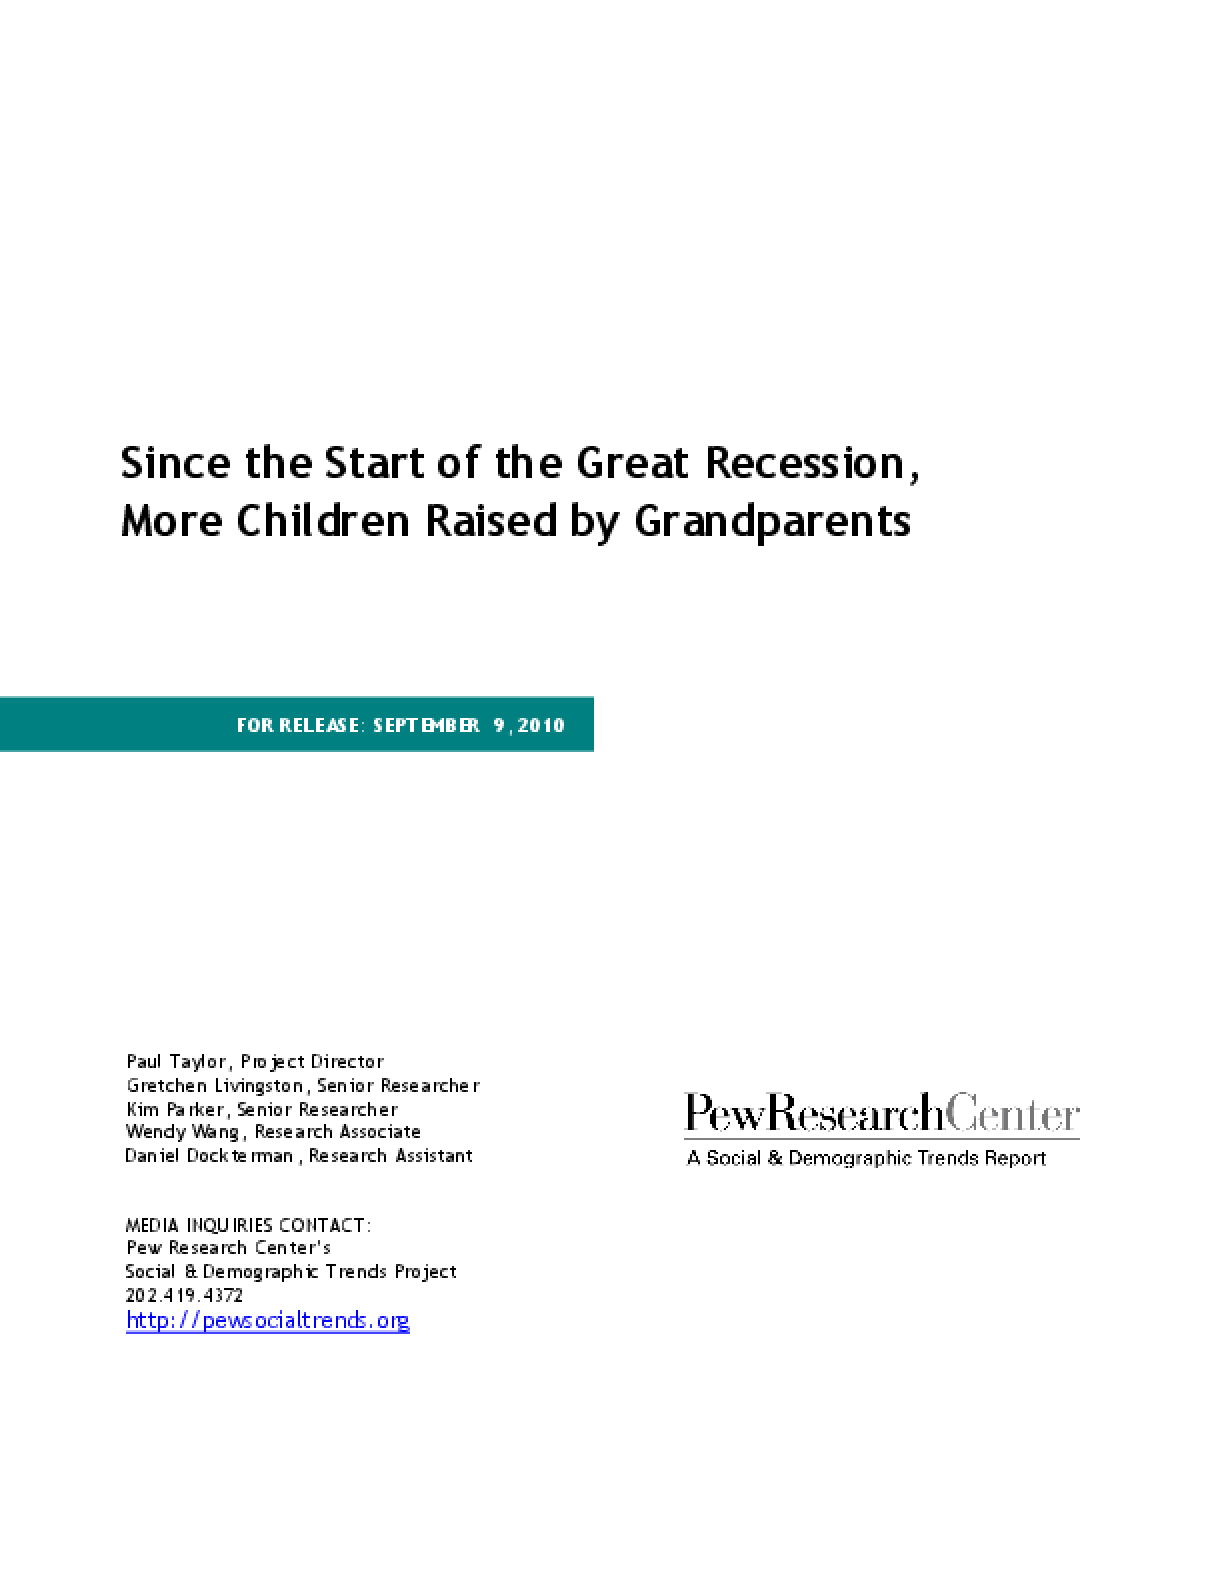 Since the Start of the Great Recession, More Children Raised by Grandparents